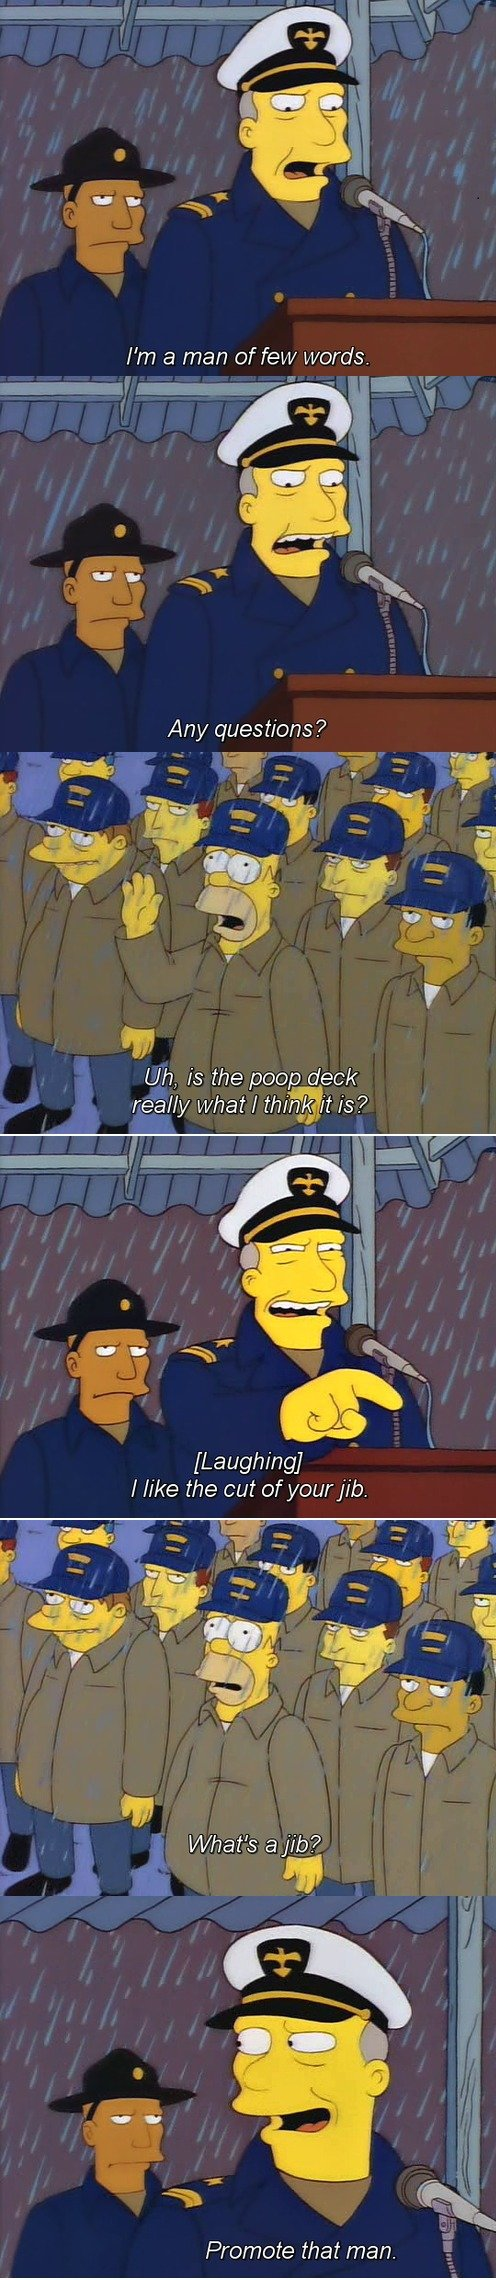 Man of Few Words. Source: Simpsons Guy.. But to answer the question; yes it is called the poopdeck because that's where they traditionally took a dump